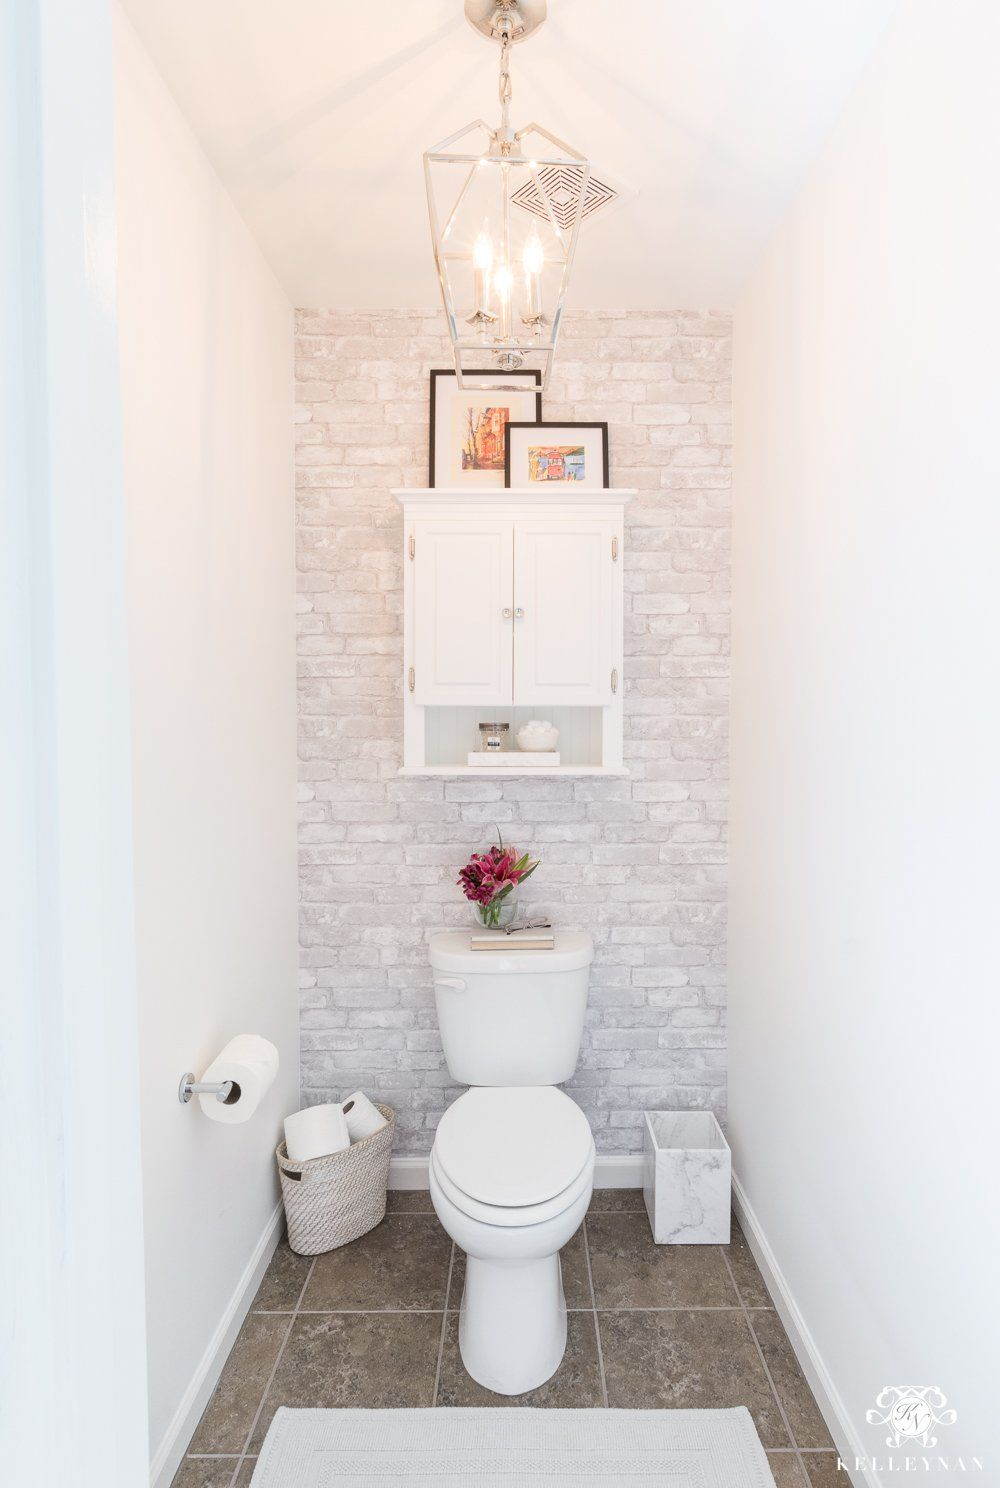 Toilet Room Makeover Reveal And Clever Bathroom Storage Kelley Nan Toilet Room Decor Clever Bathroom Storage Small Bathroom Remodel